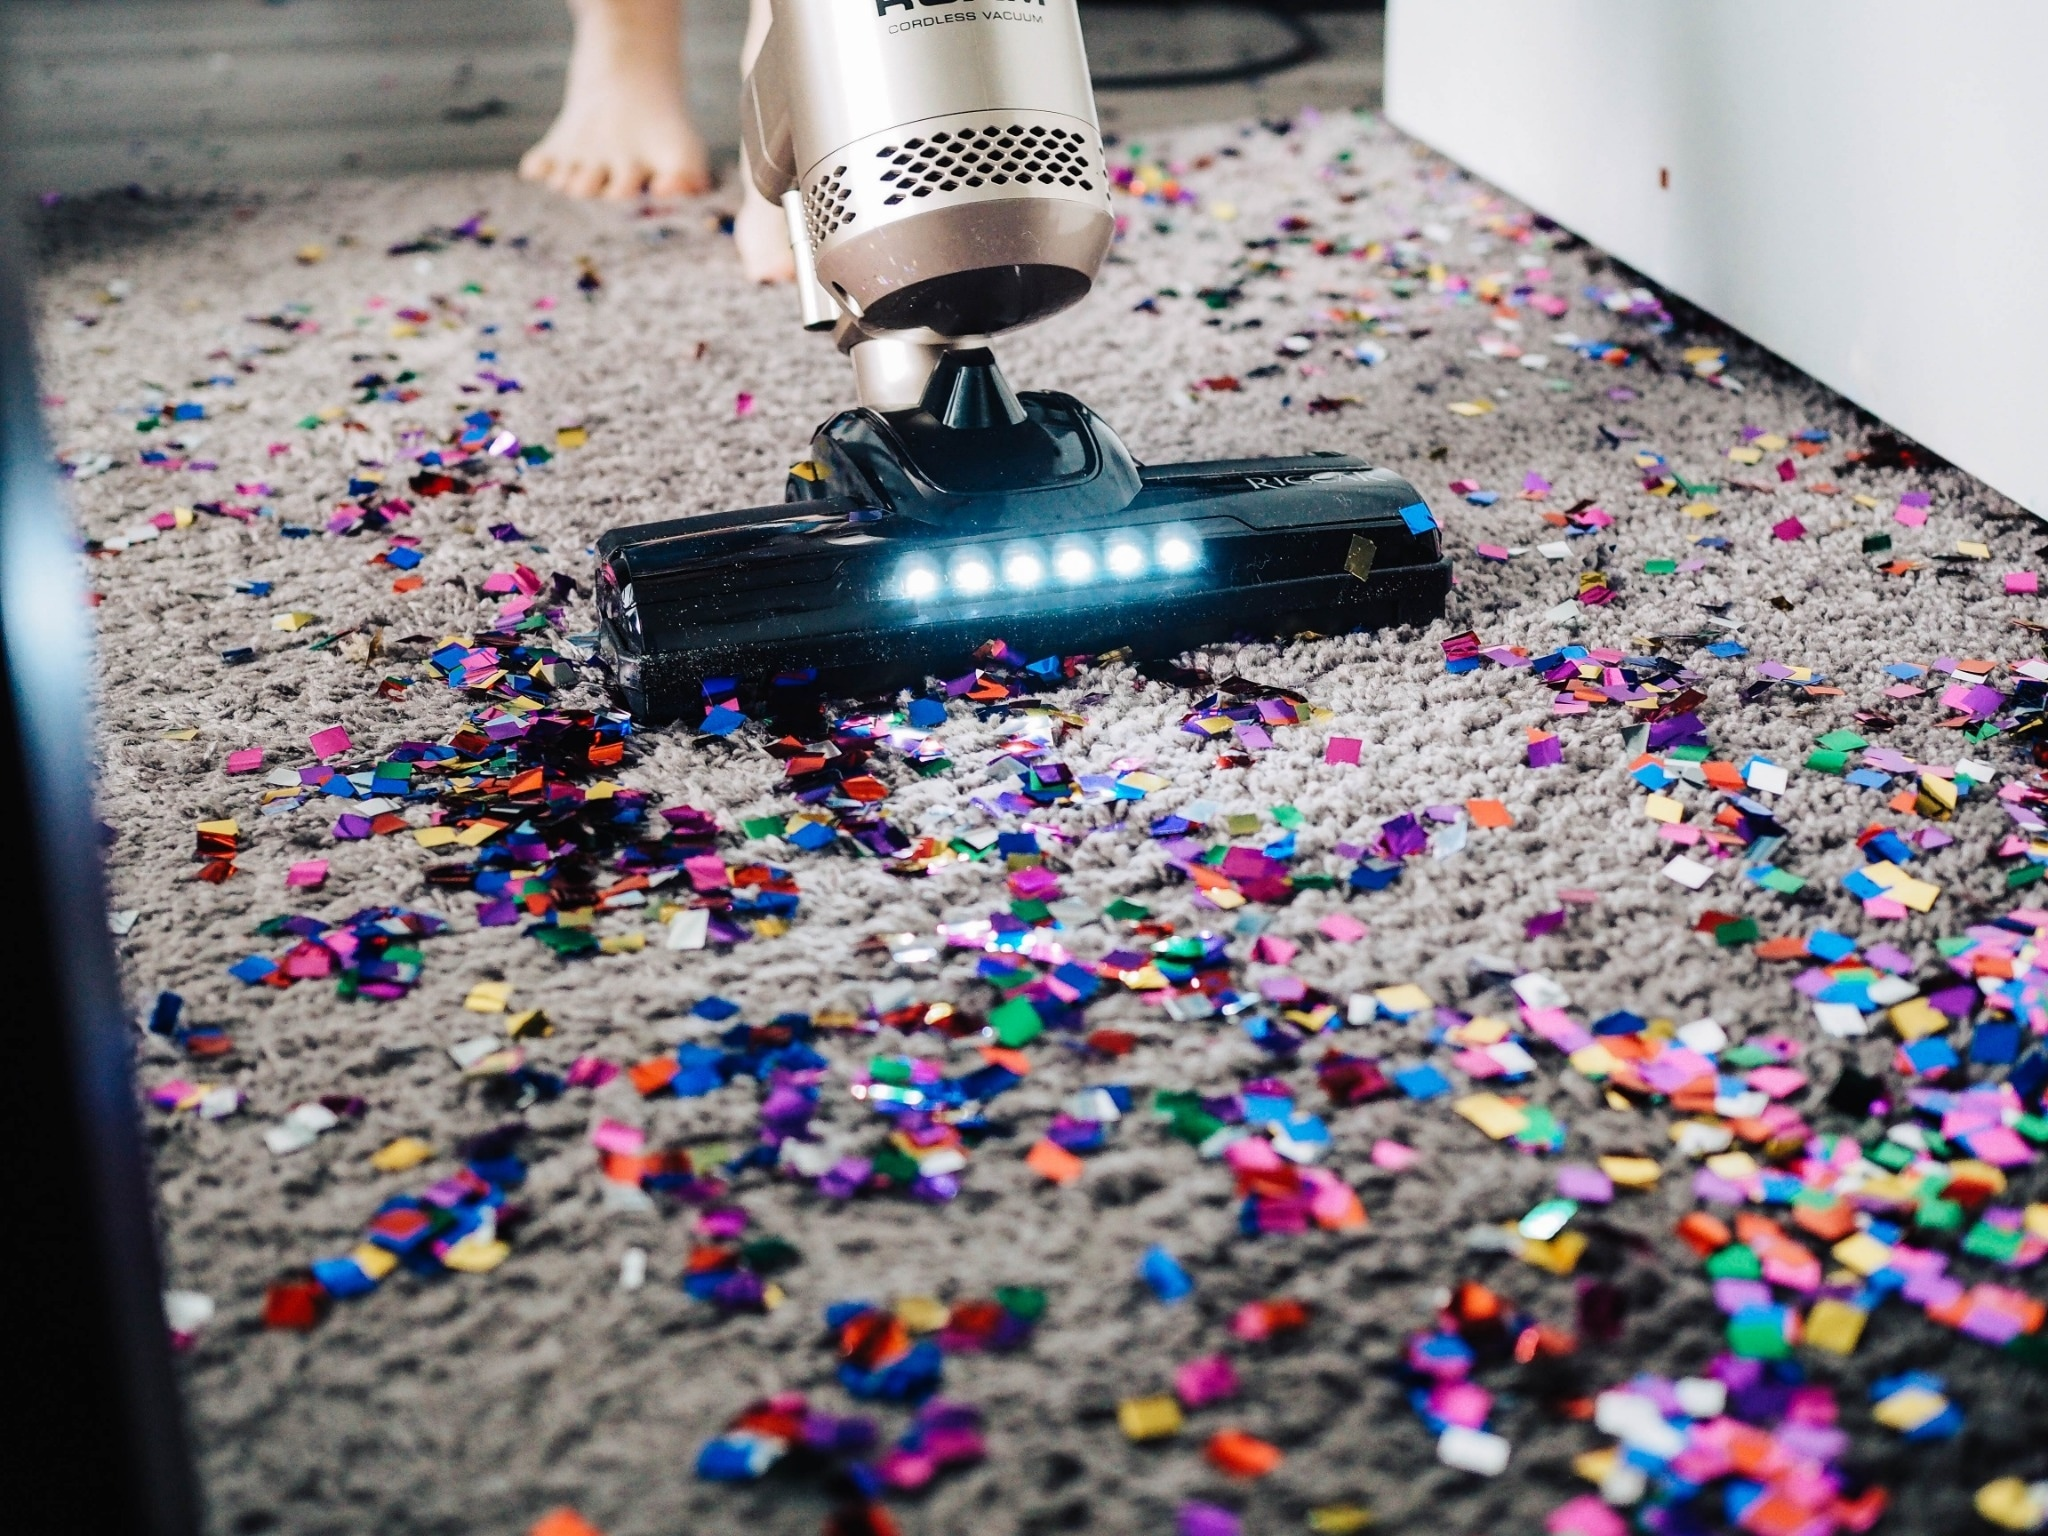 Shark Vacuum Models >> Roomba vs RoboVac vs Shark: Which Robot Vacuum Do Owners Love the Most?